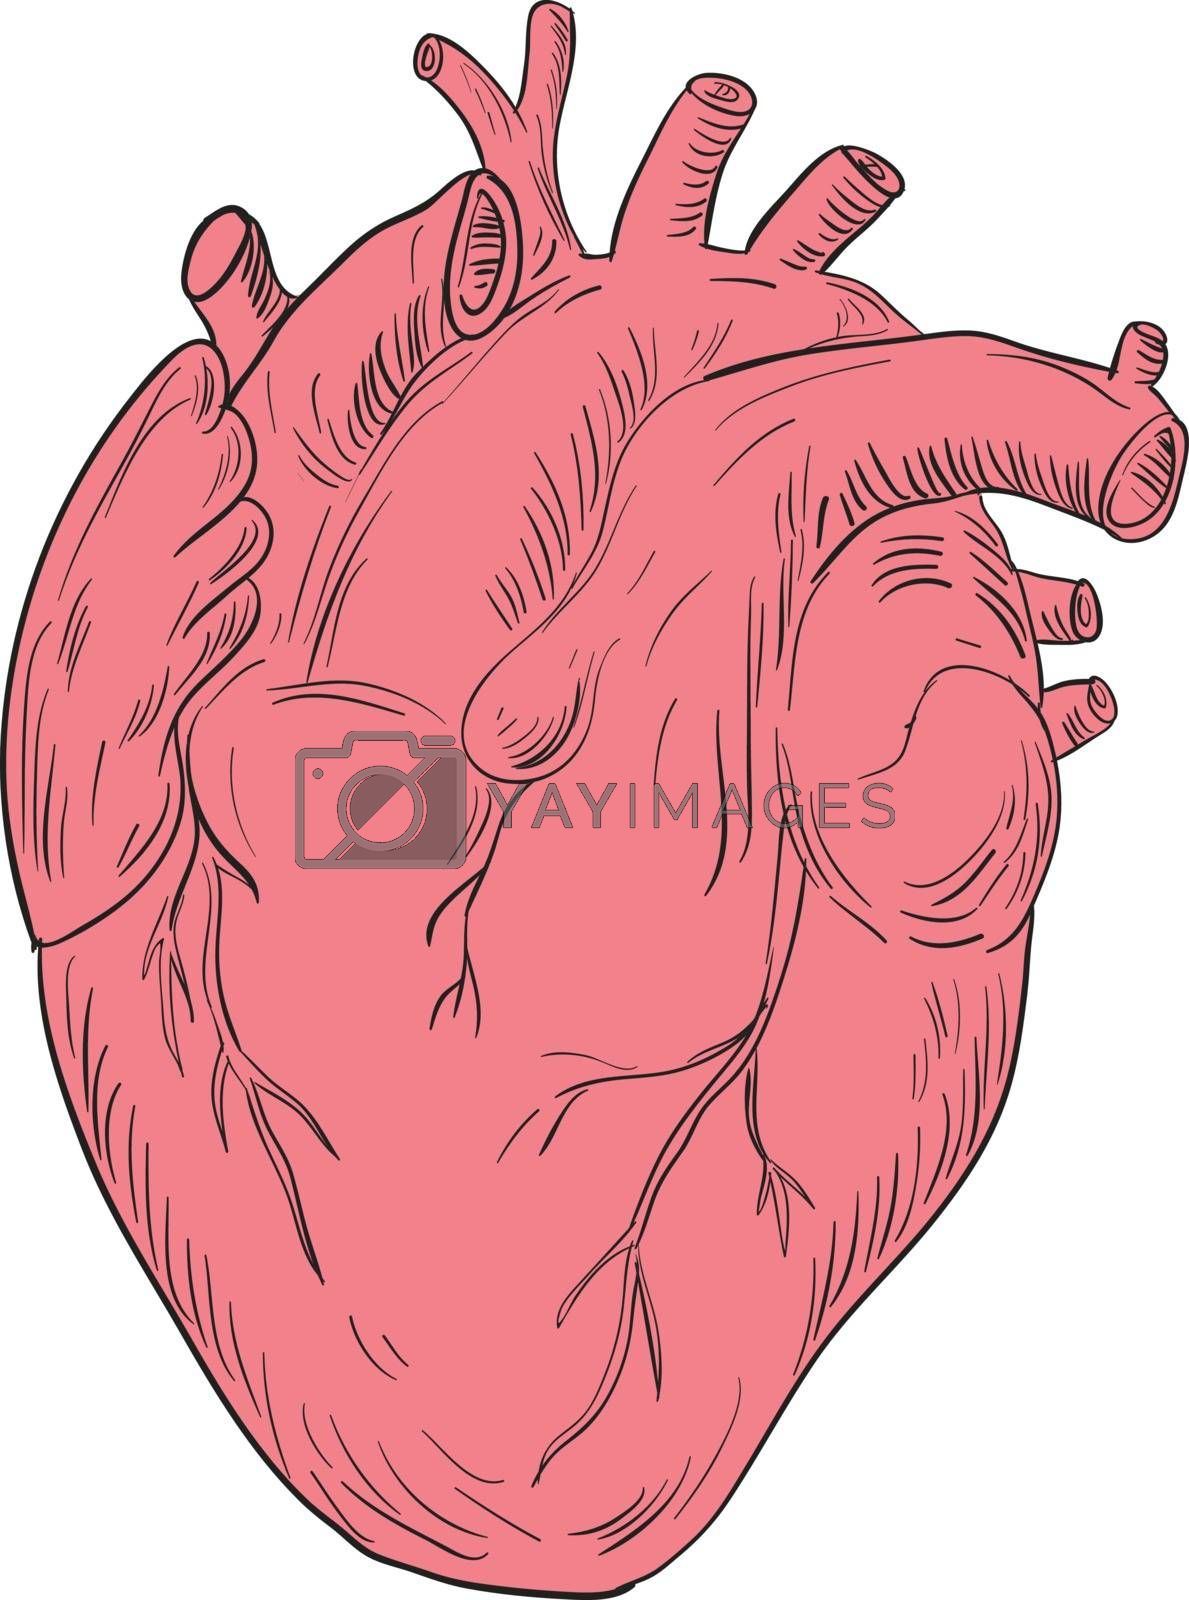 Drawing sketch style illustration of a human heart anatomy set isolated white background.